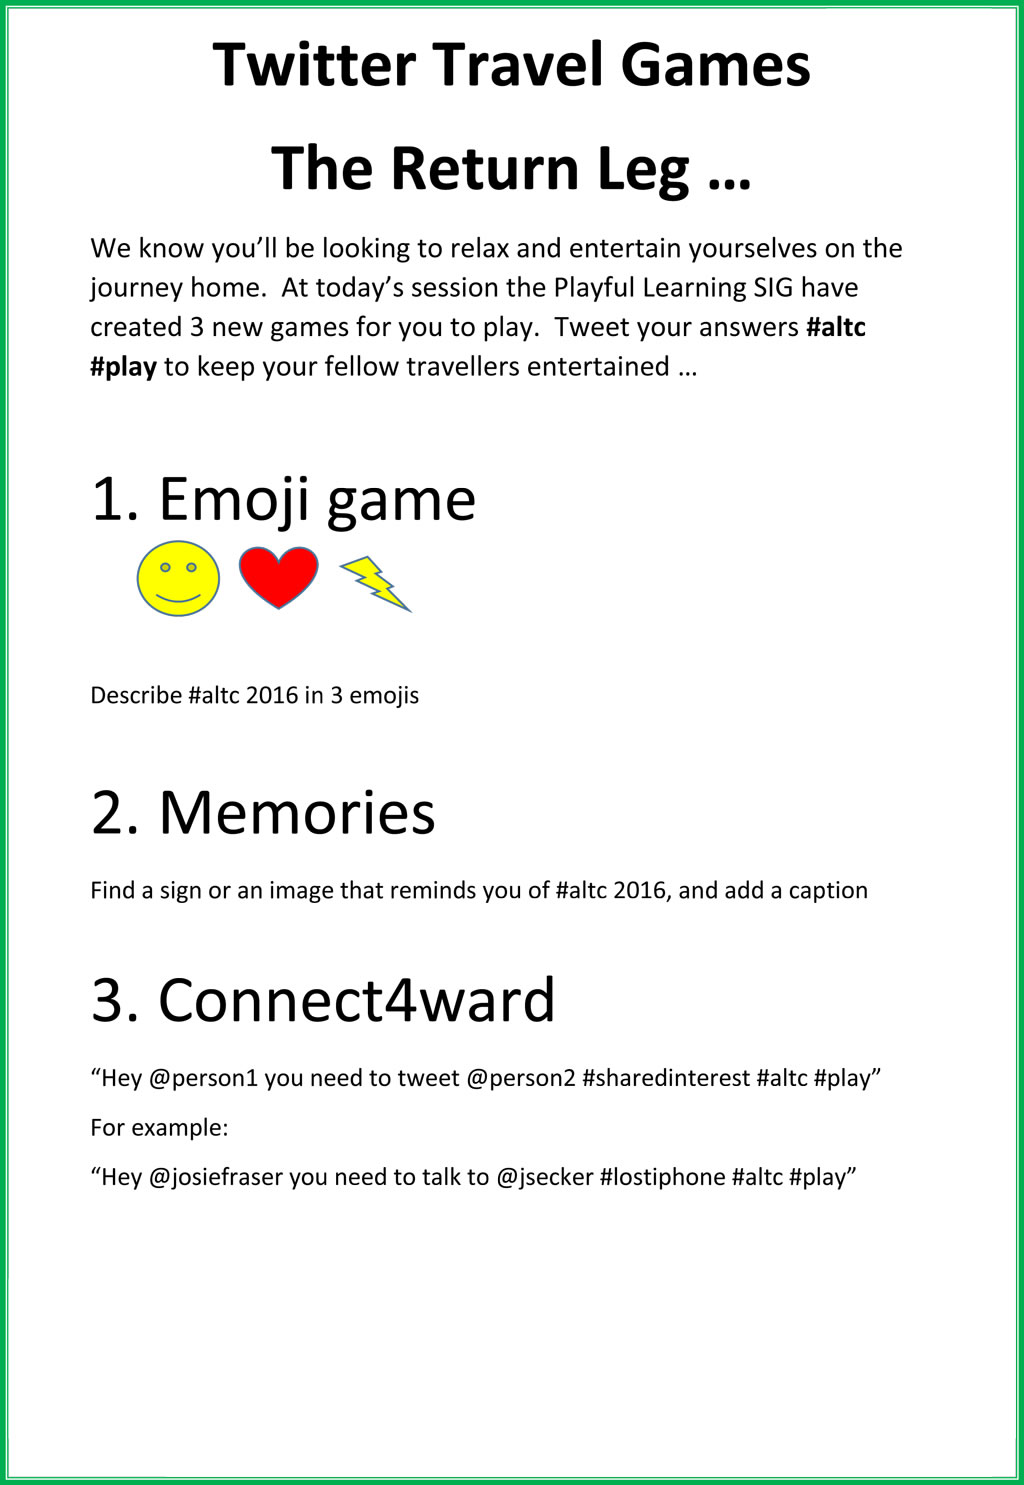 Twitter Travel Games The Return Leg … #altc #play